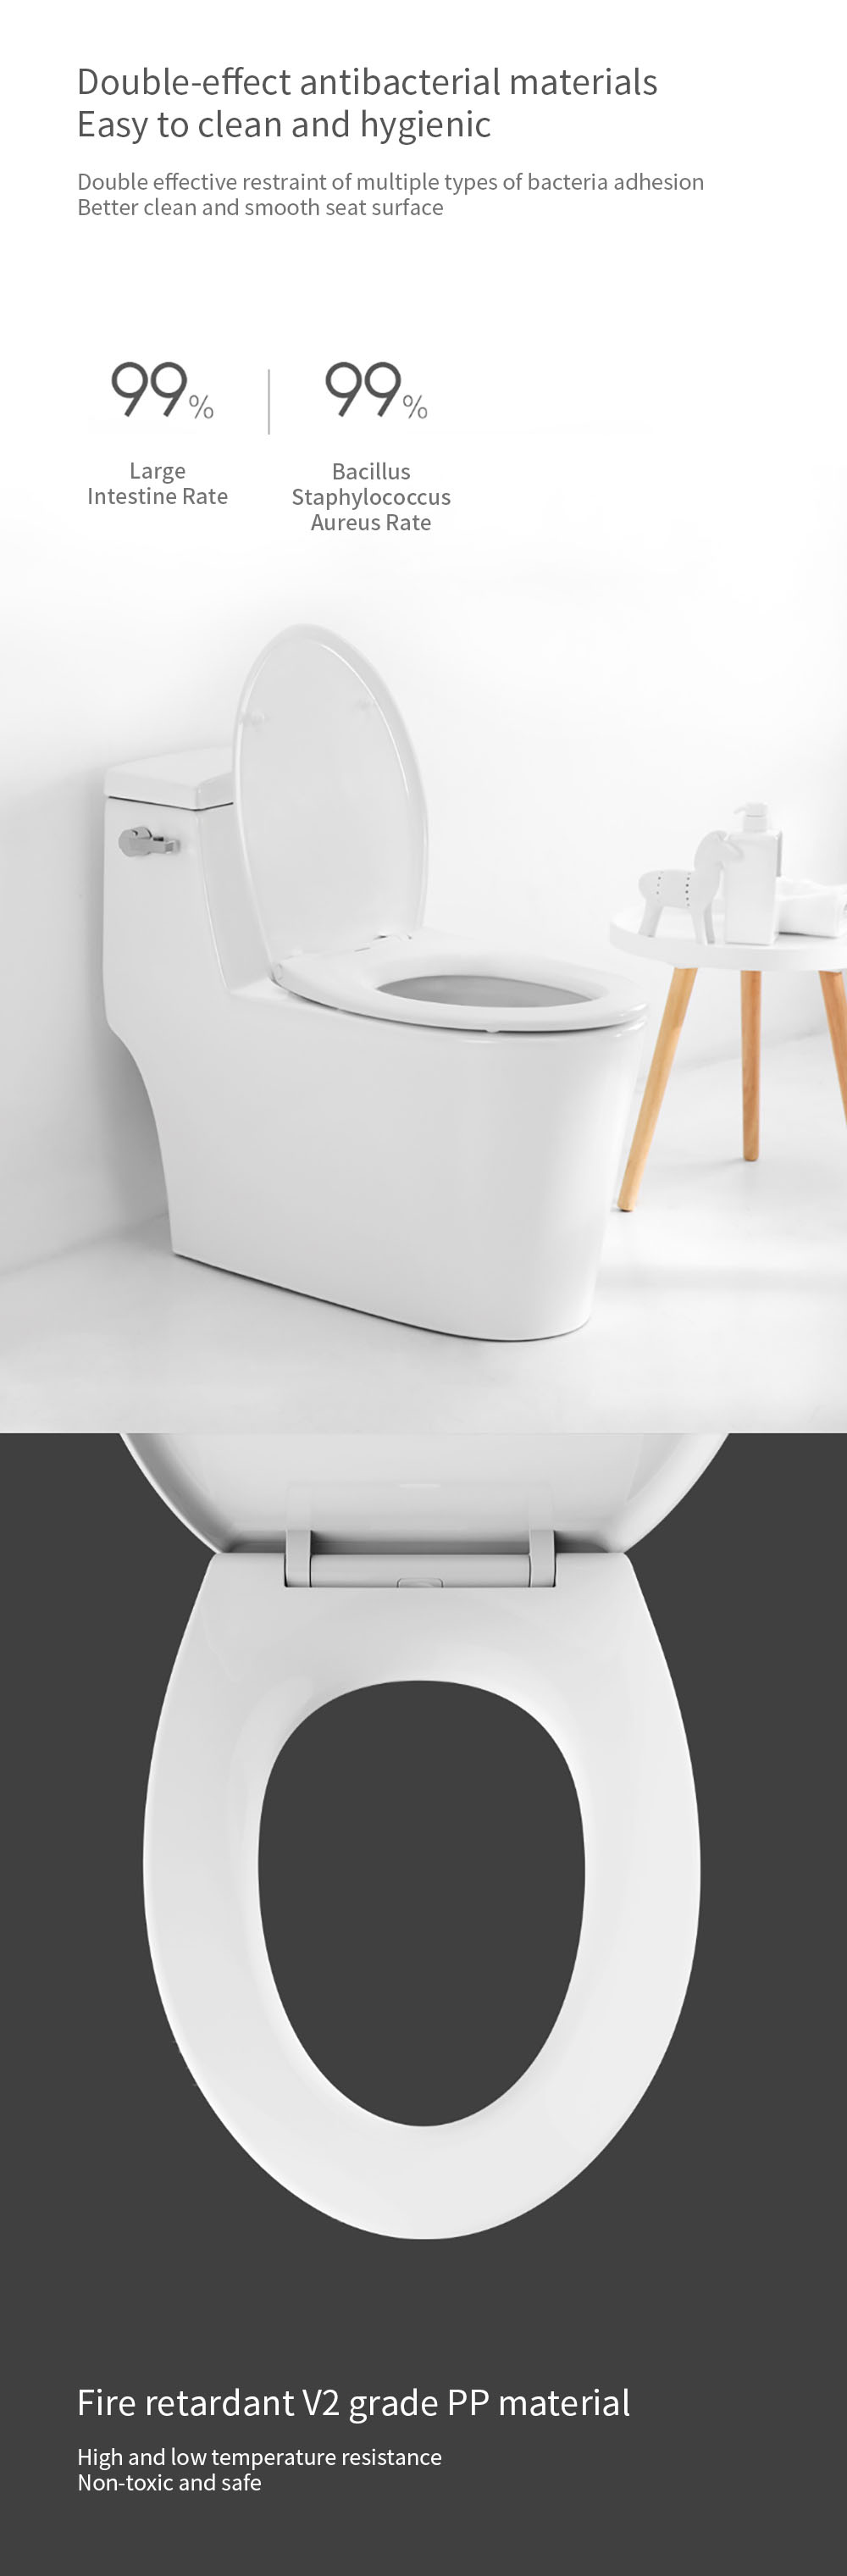 Remarkable Temperature Adjustment Version Smart Whale Spout Heating Toilet Seat Cover Ntc Temperature Control With Induction Night Light Antibacterial Rate Spiritservingveterans Wood Chair Design Ideas Spiritservingveteransorg